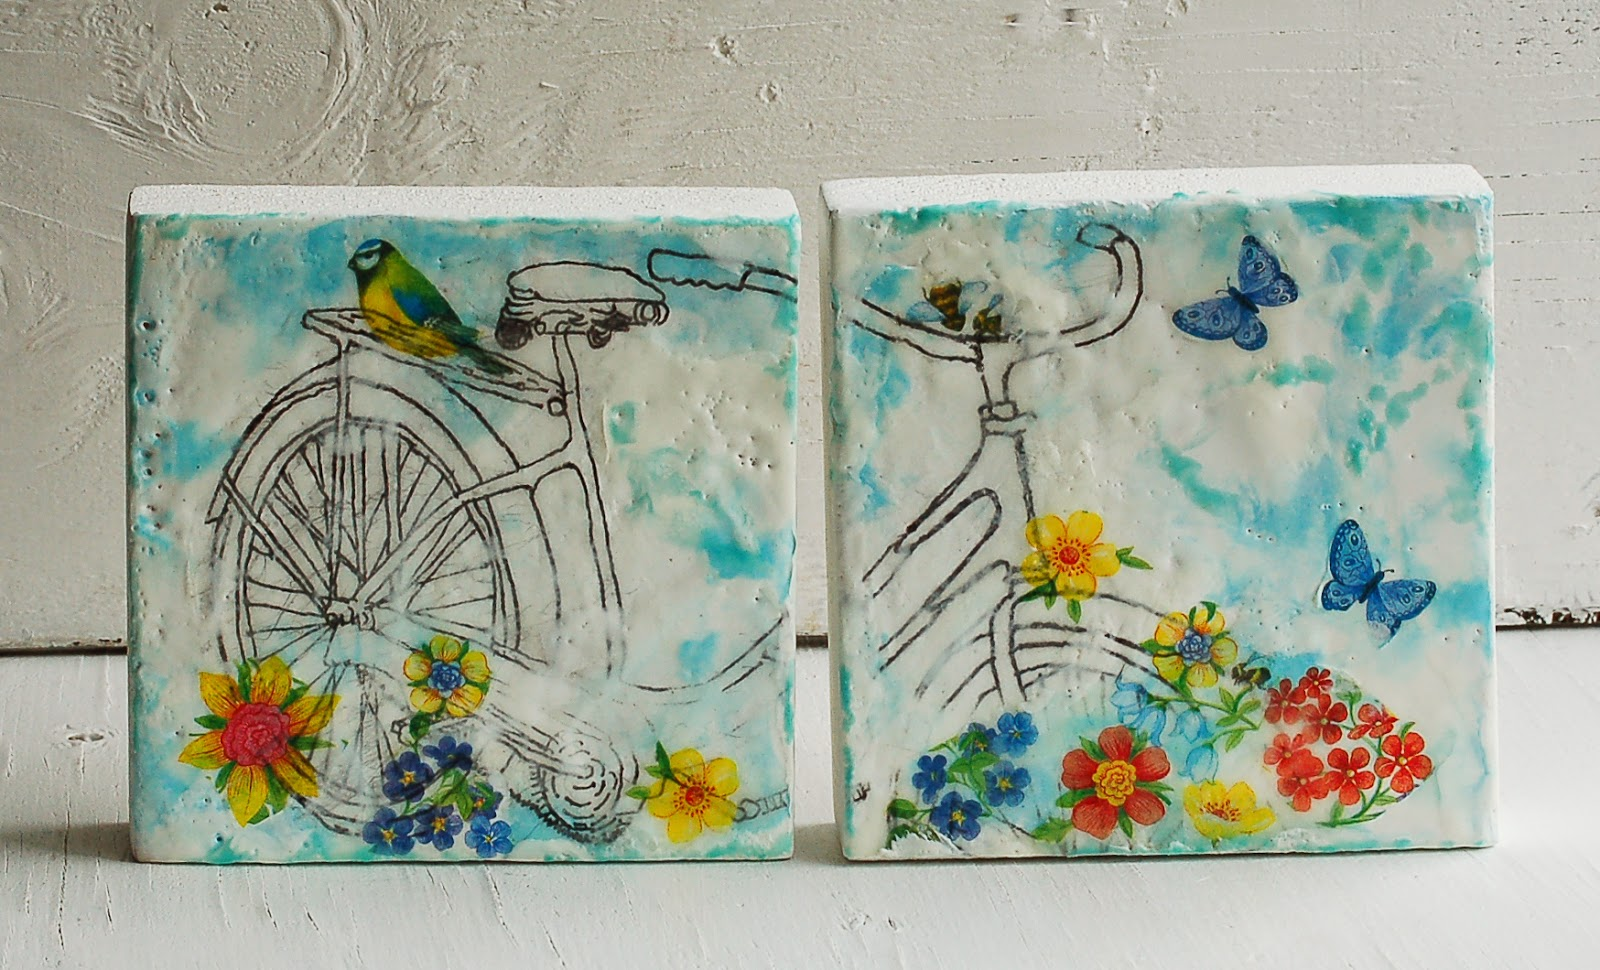 https://www.etsy.com/listing/185147424/springtime-bicycle-ride-original?ref=shop_home_active_4